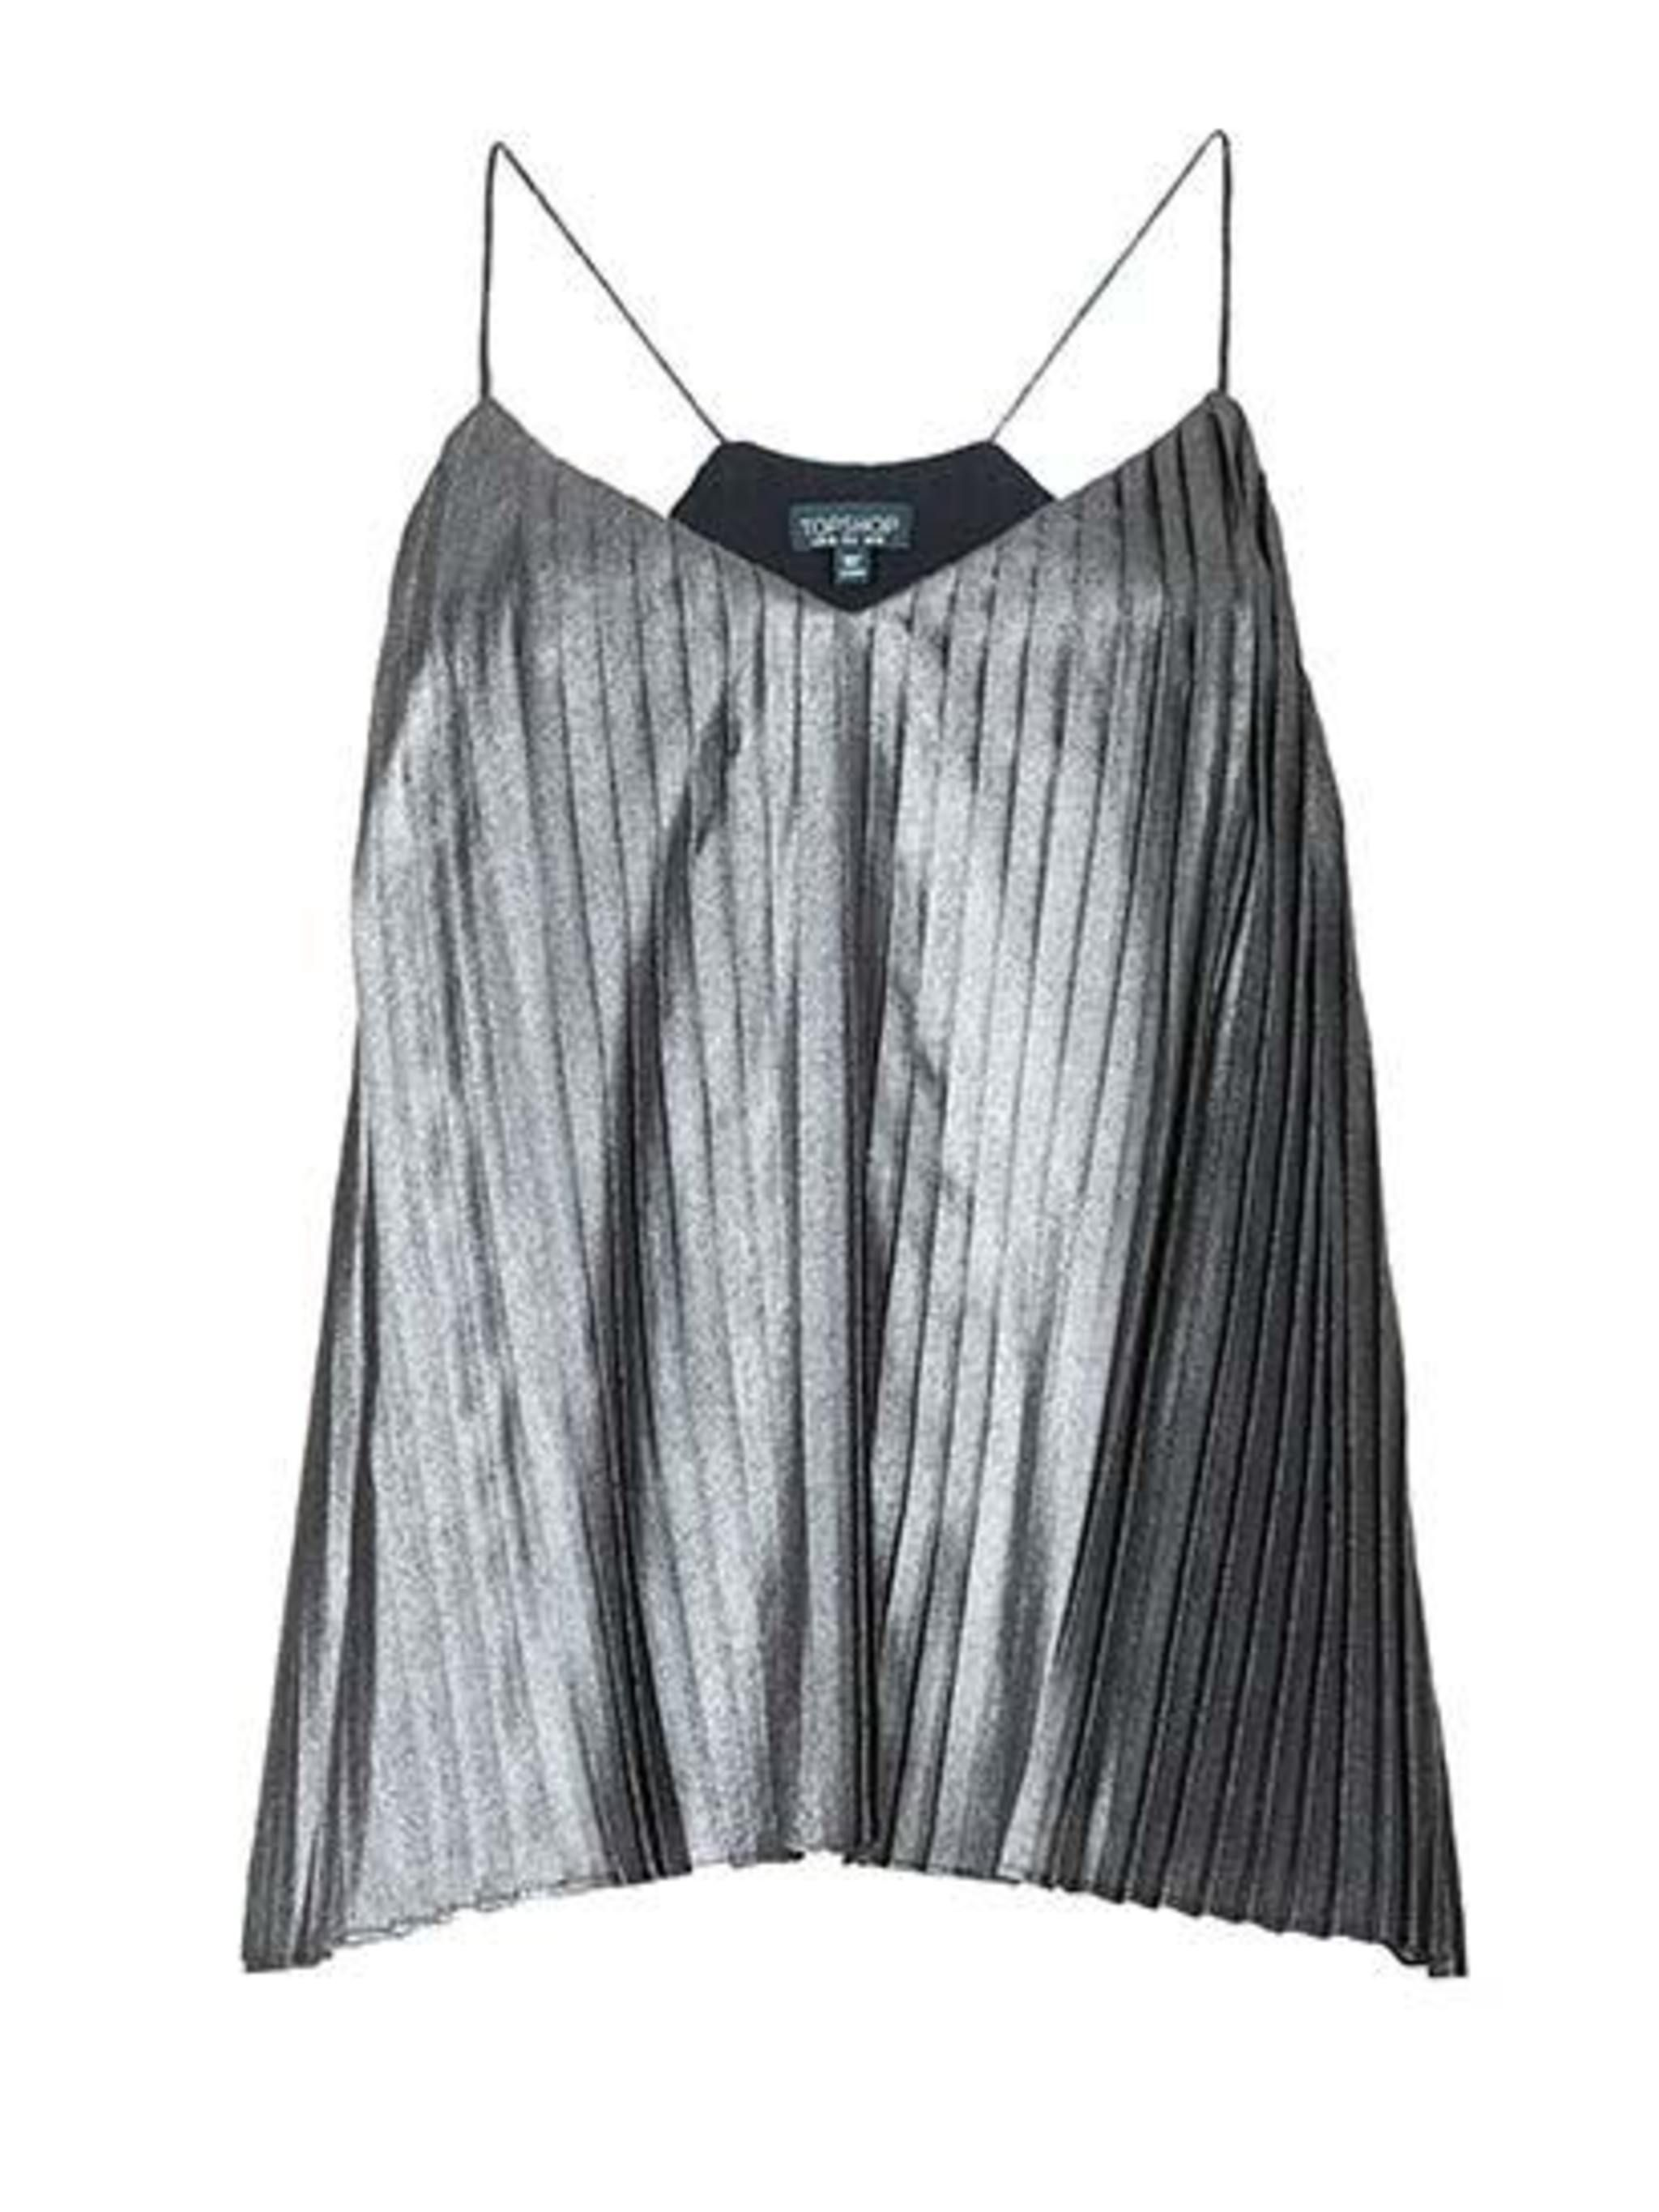 "<p><a href=""http://www.topshop.com/en/tsuk/product/clothing-427/tops-443/metallic-pleat-cami-3306590?bi=1&ps=20"">Topshop</a> metallic tank top, £28</p>"